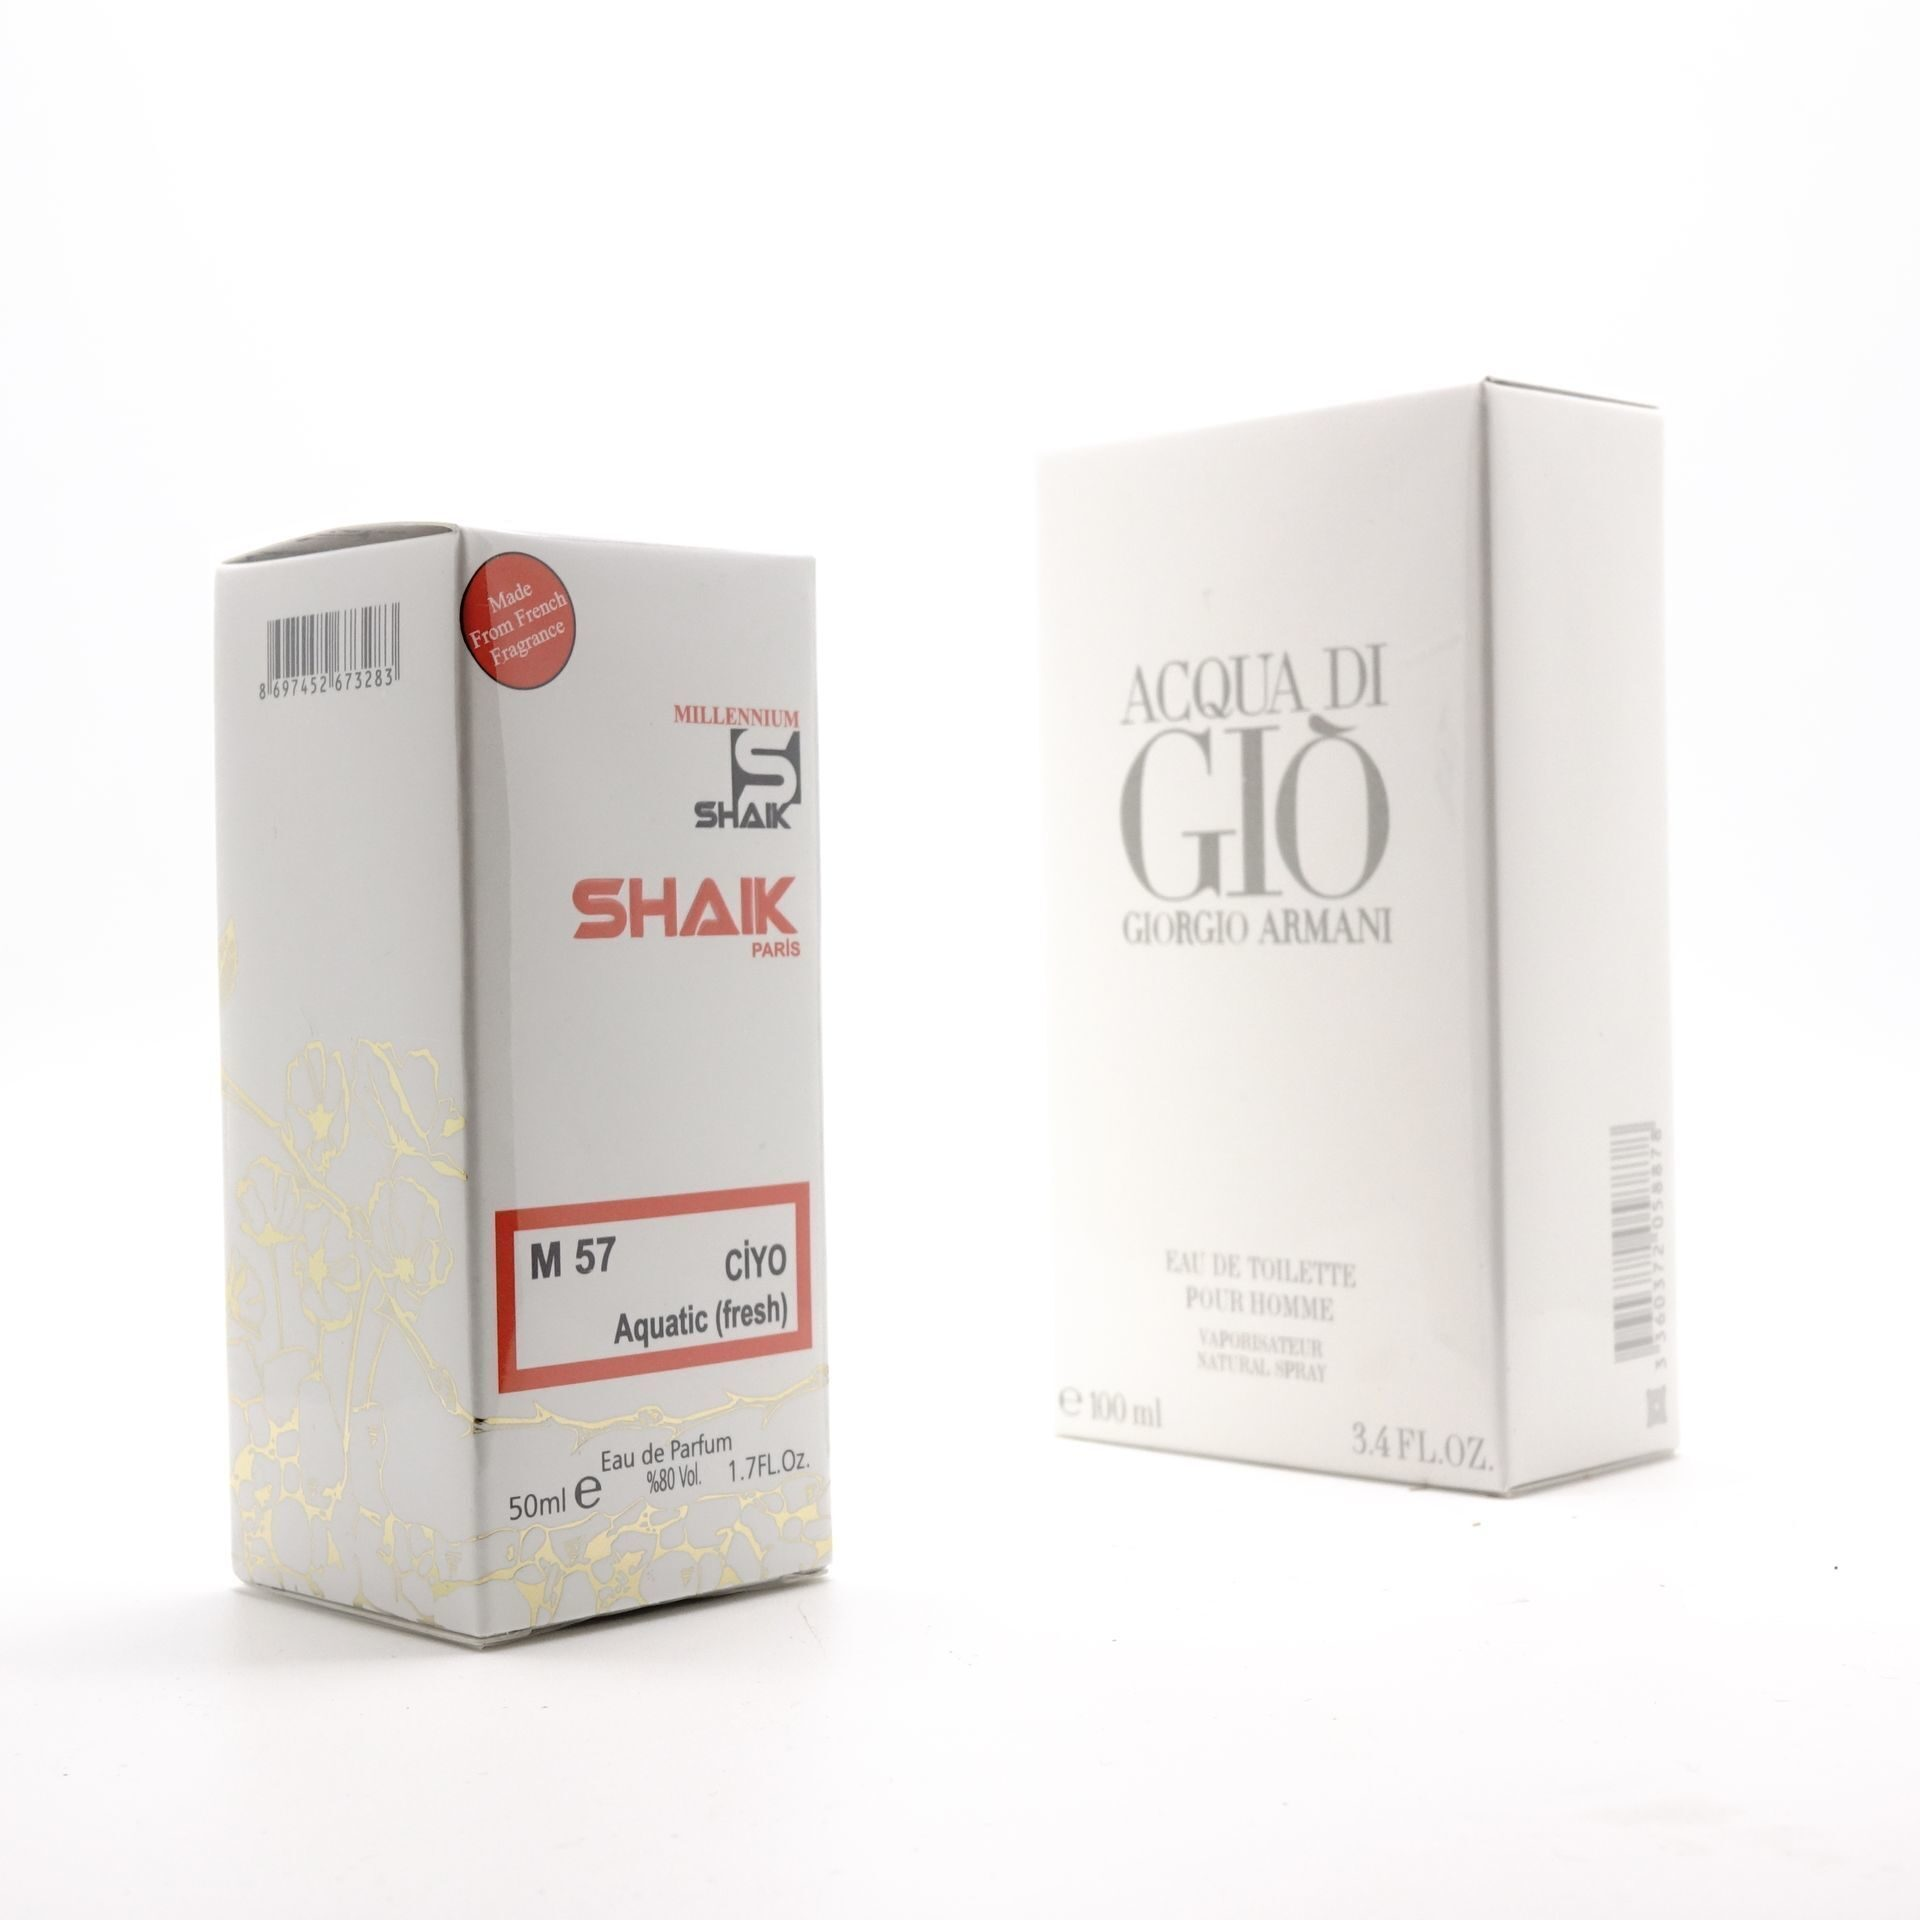 SHAIK M 57 (GIORGIO ARMANI ACQUA Dl GIO FOR MEN) 50ml